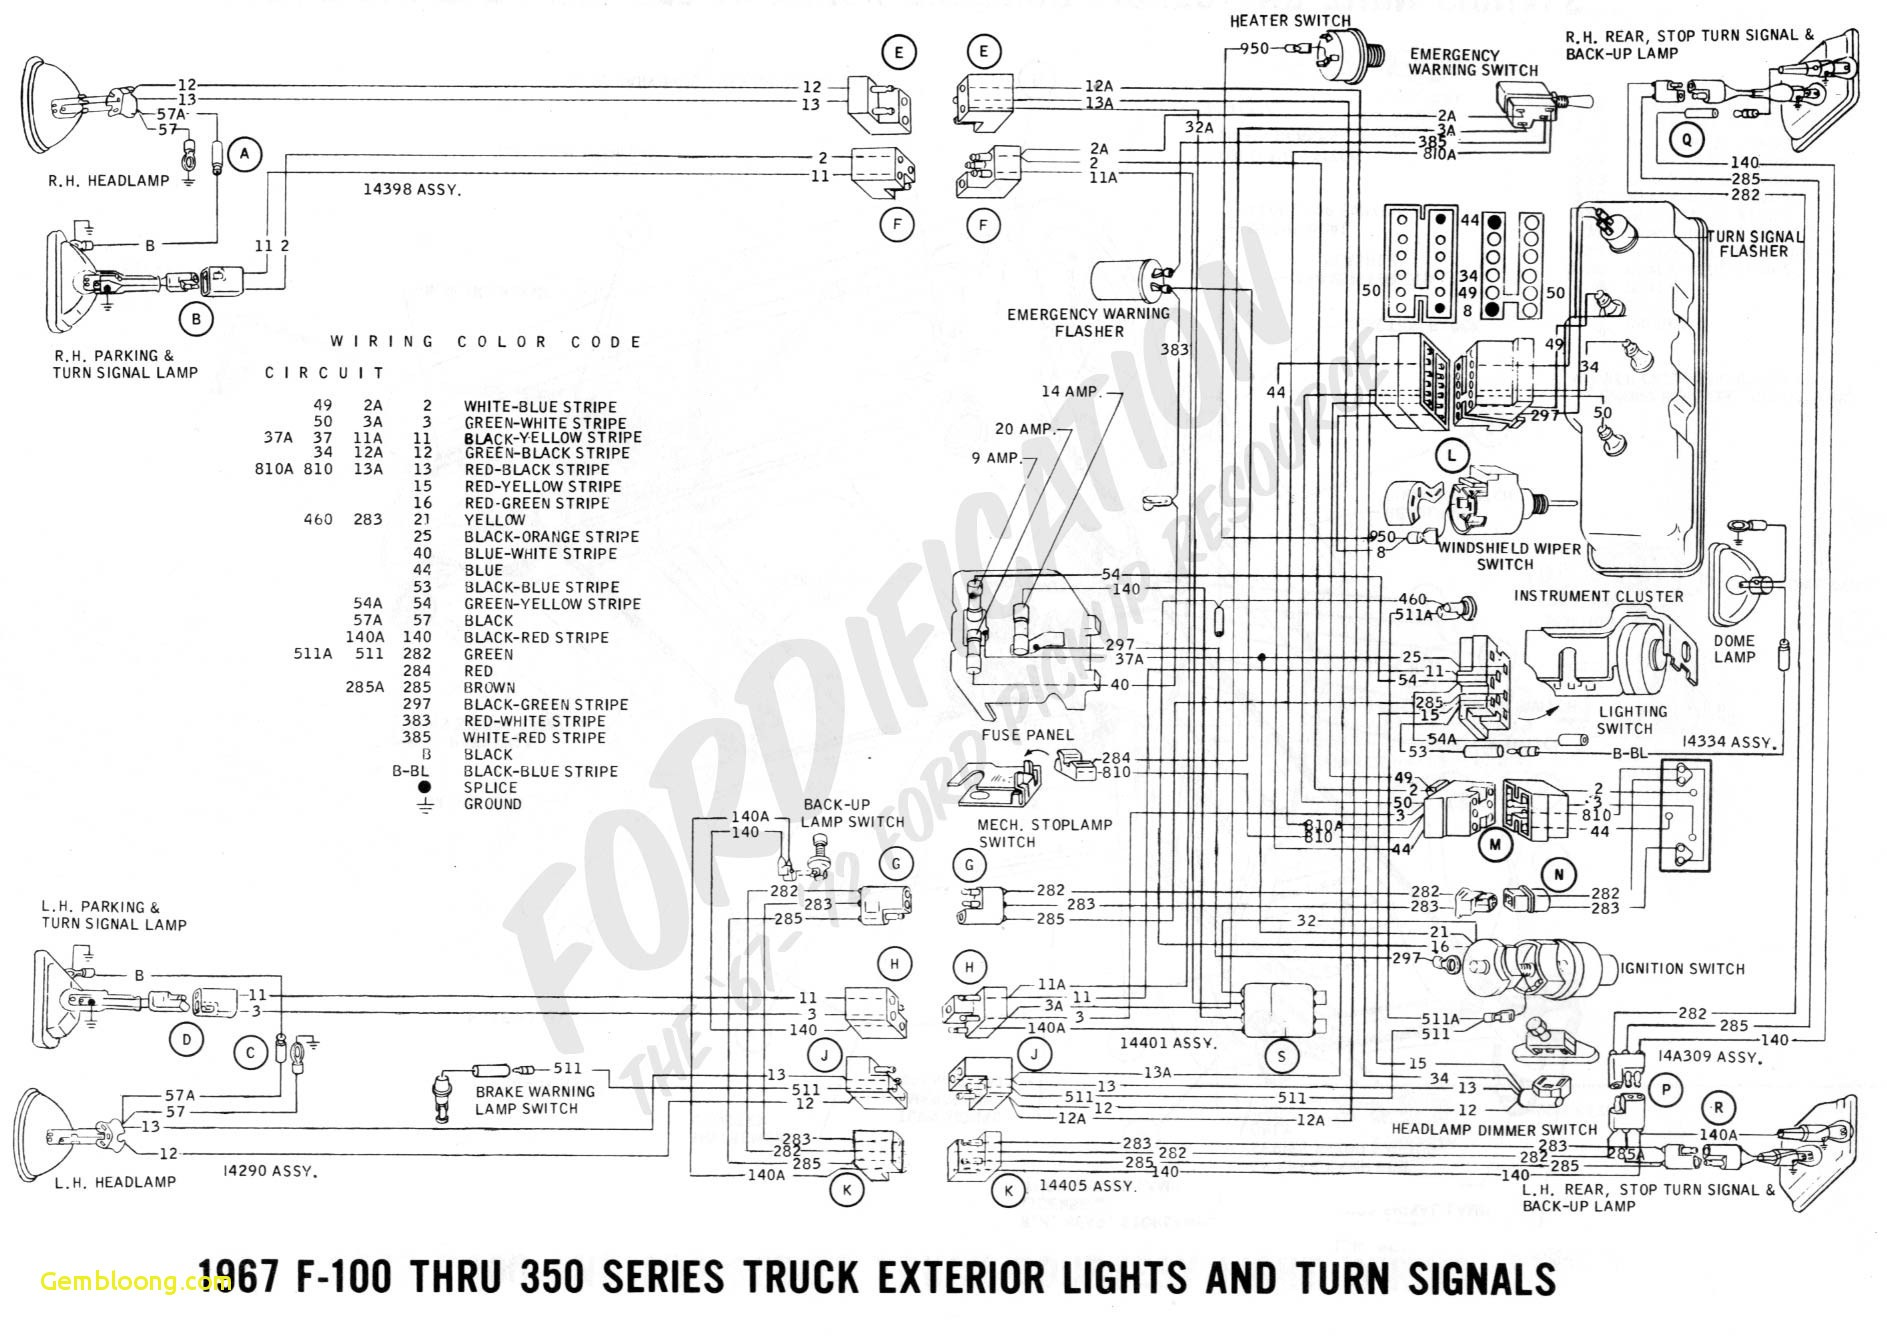 Turboshaft Engine Diagram Download ford Trucks Wiring Diagrams ford F150 Wiring Diagrams Best Of Turboshaft Engine Diagram